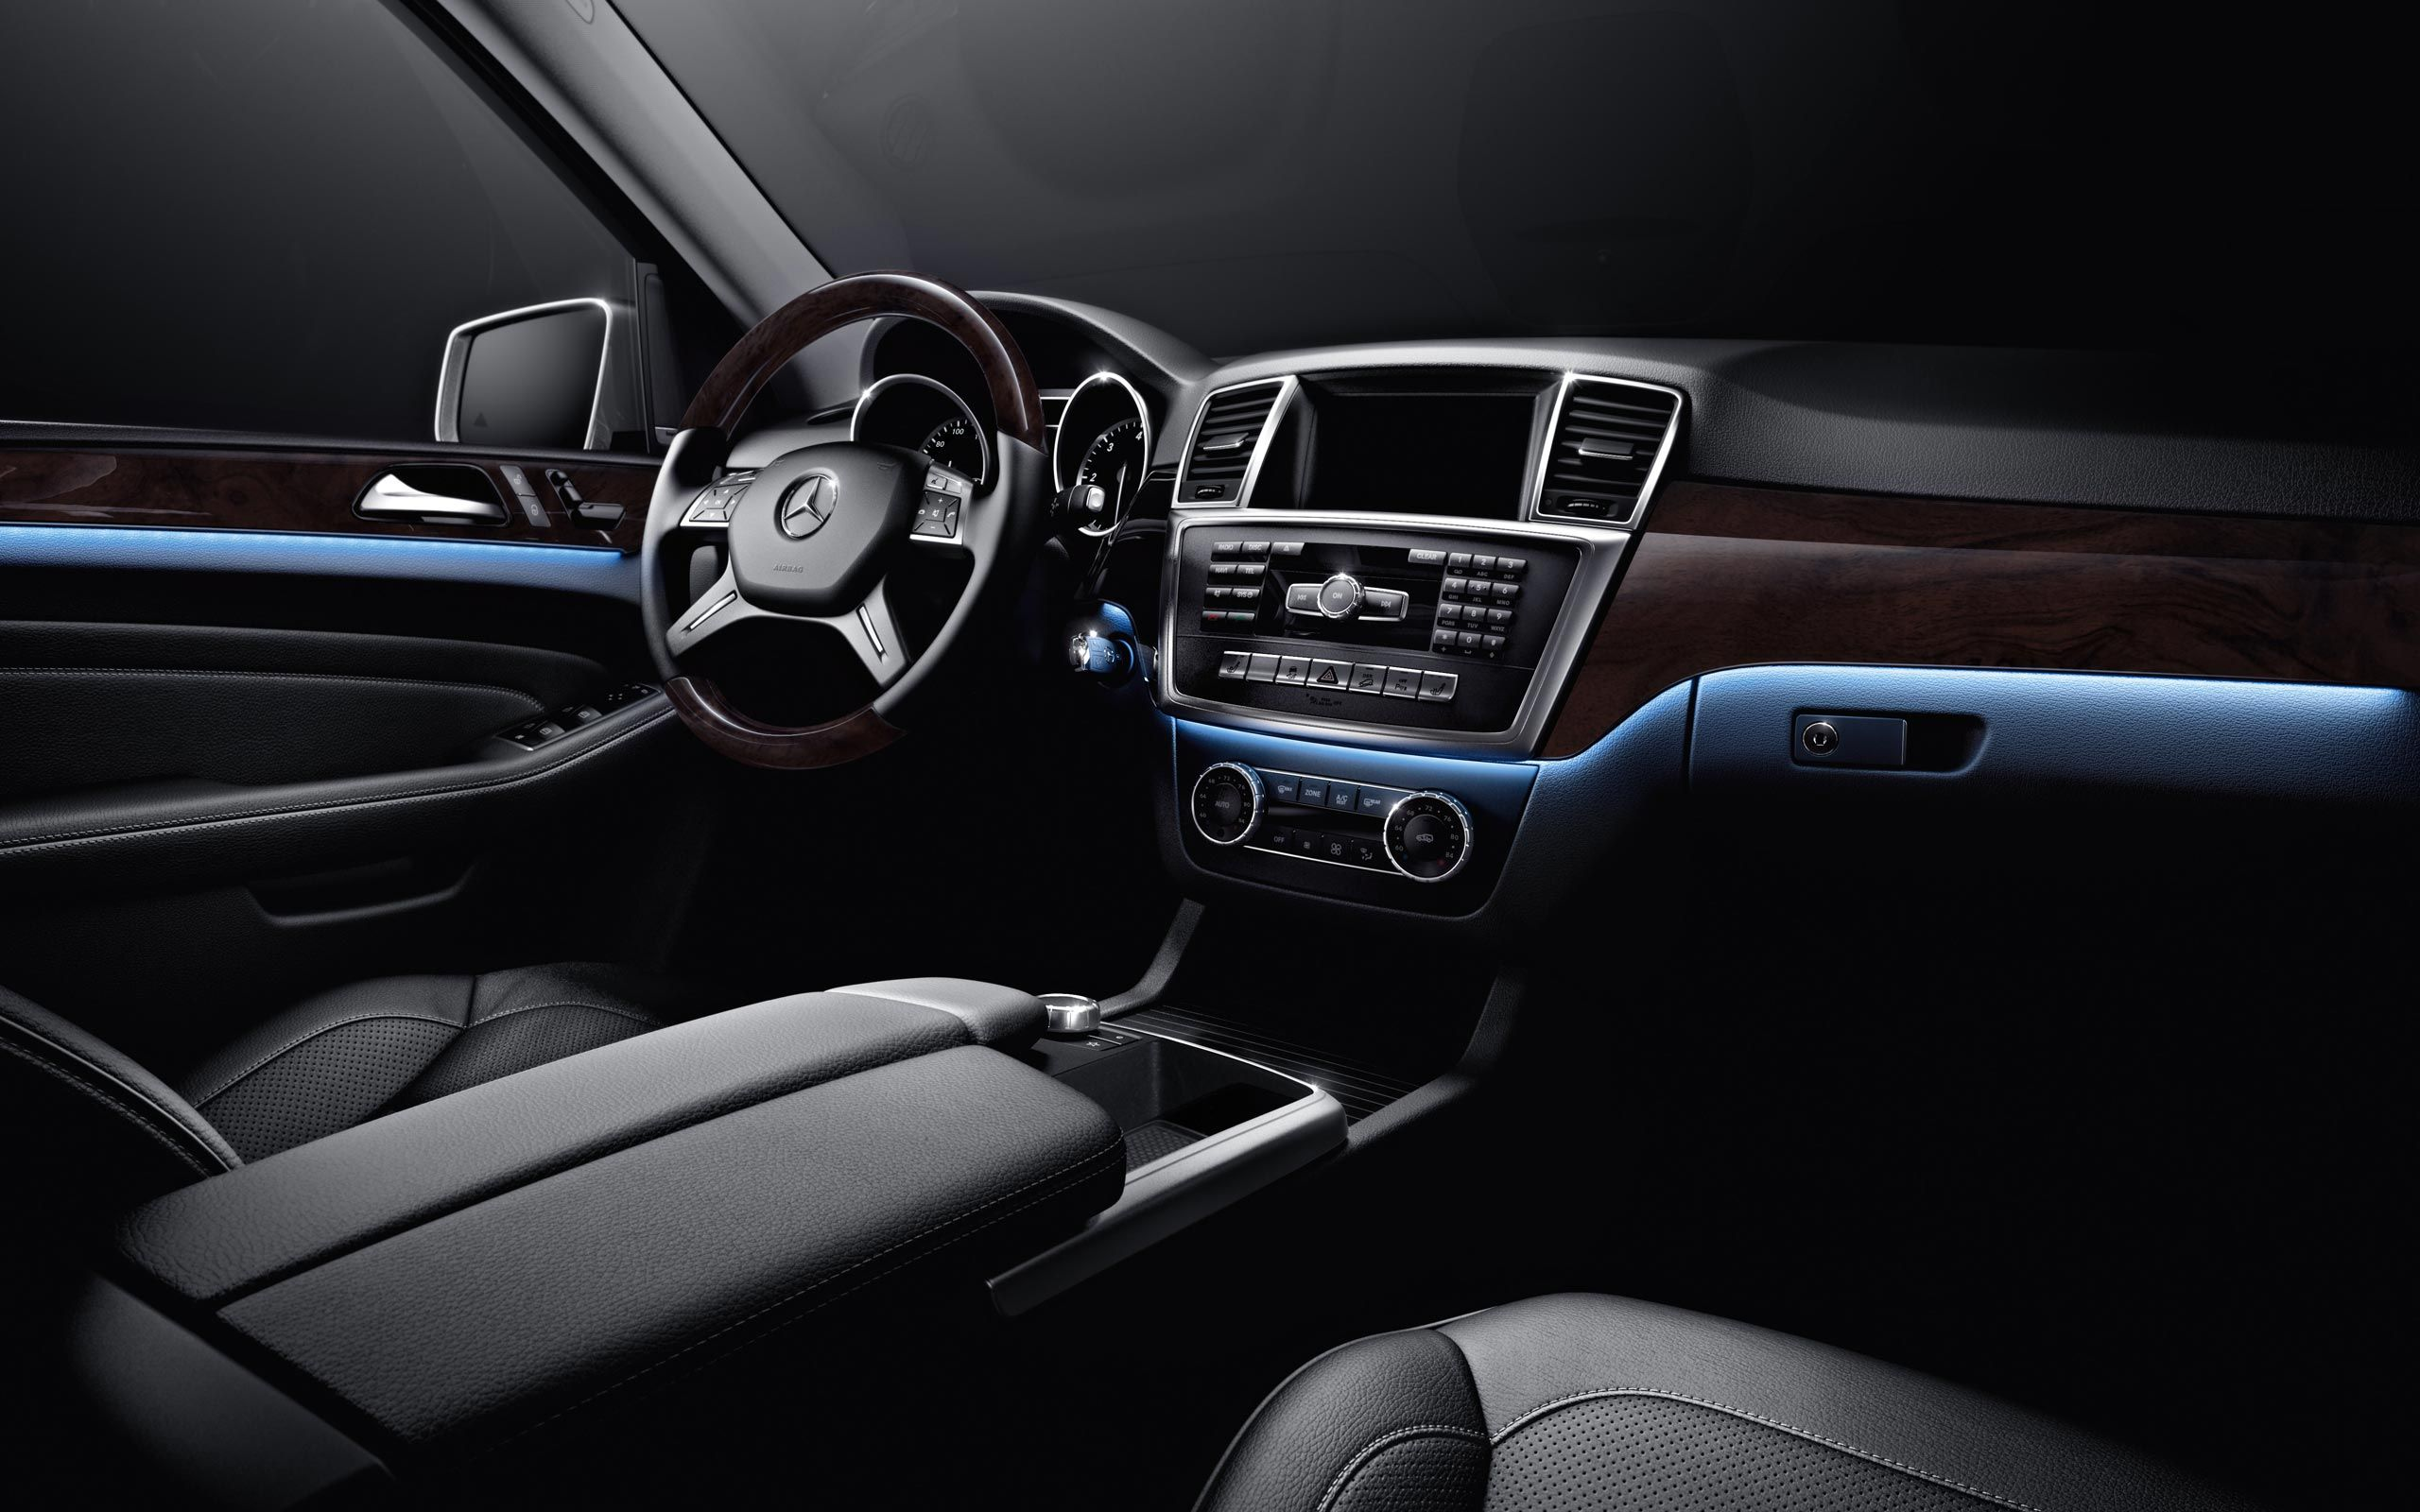 Mercedes Benz Ml350 With Available Multicolor Ambient Lighting Shown In Polar M Class